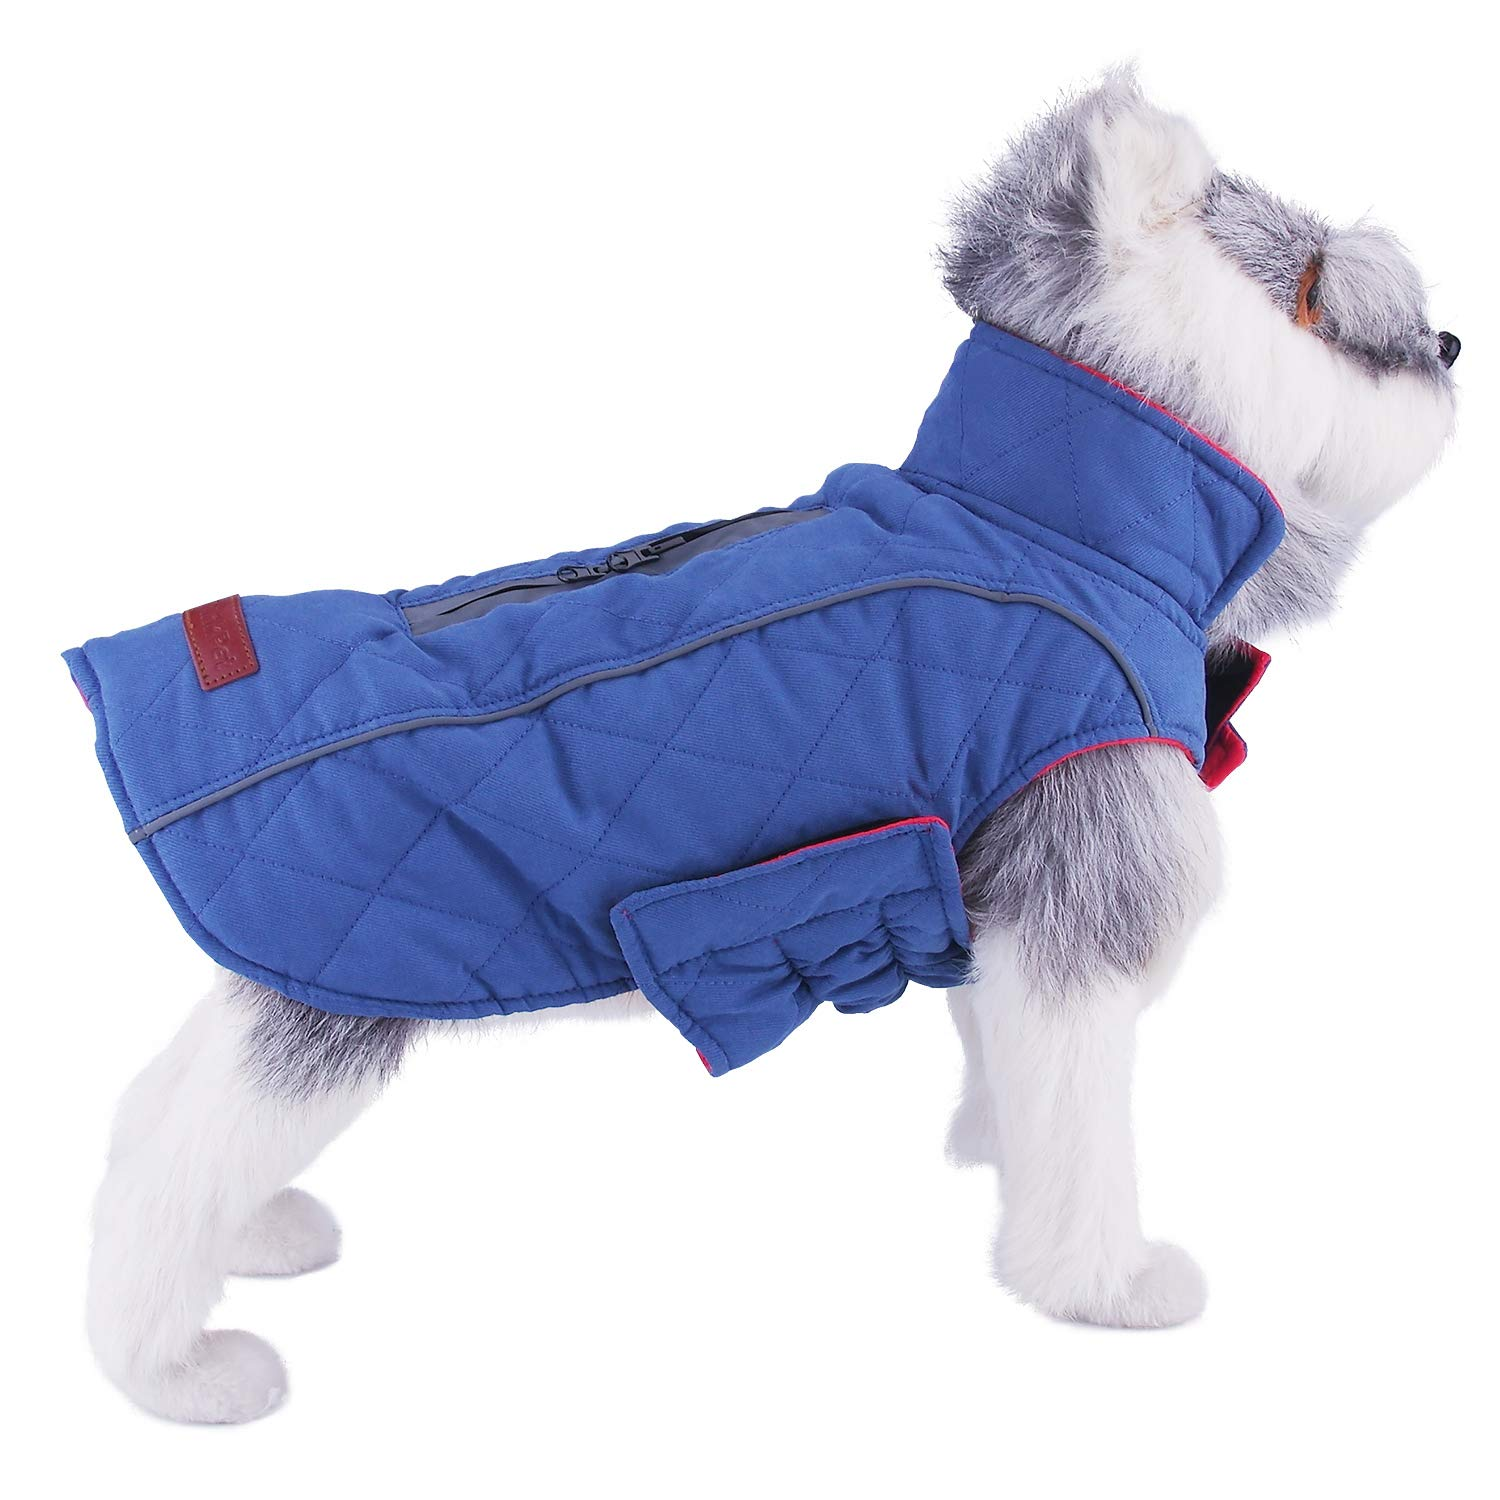 bluee XL(Neck  20.7\ bluee XL(Neck  20.7\ ThinkPet Outdoor Cotton Winter Dog Jacket Reversible Reflective Padded Warm Coat with Harness Hold